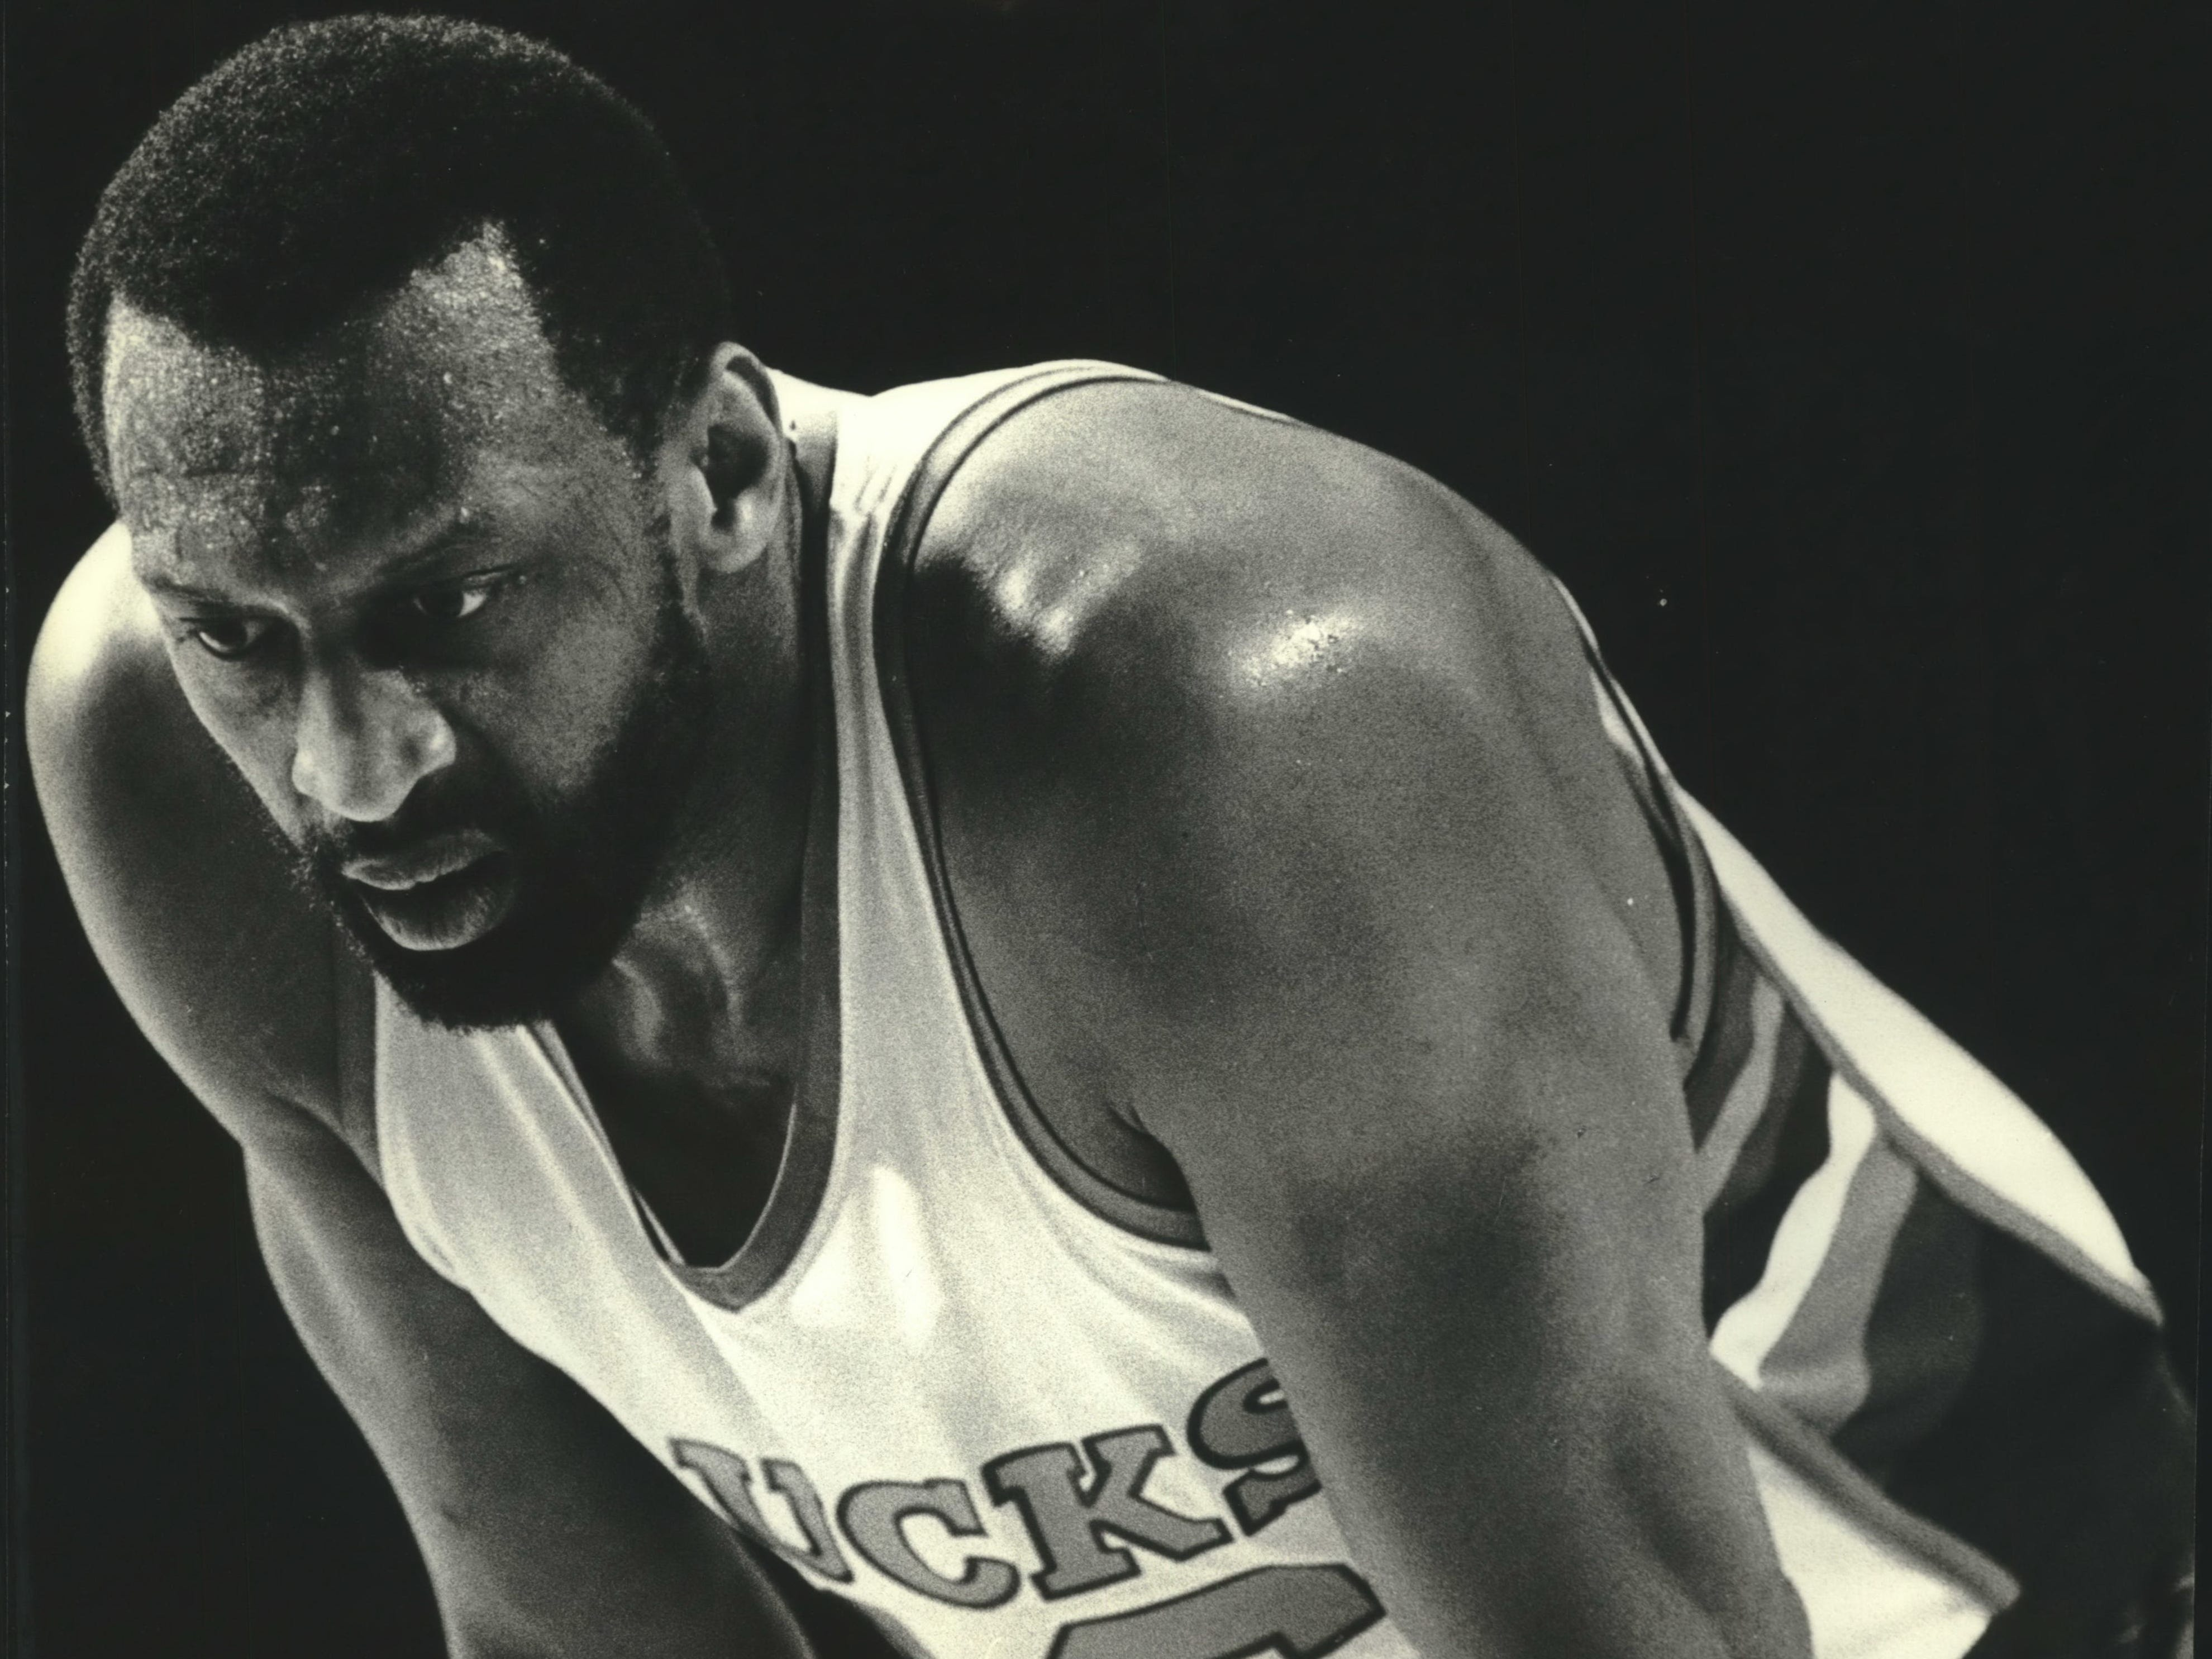 1982: The frustration and fatigue on Bucks center Bob Lanier's face says it all during Game 6 of the Eastern Conference Semifinals at the Milwaukee Arena against the Philadelphia 76ers on May 7, 1982. The Sixers beat the Bucks, 102-90, eliminating Milwaukee from the playoffs. This photo was published in the May 8, 1982, Milwaukee Journal.